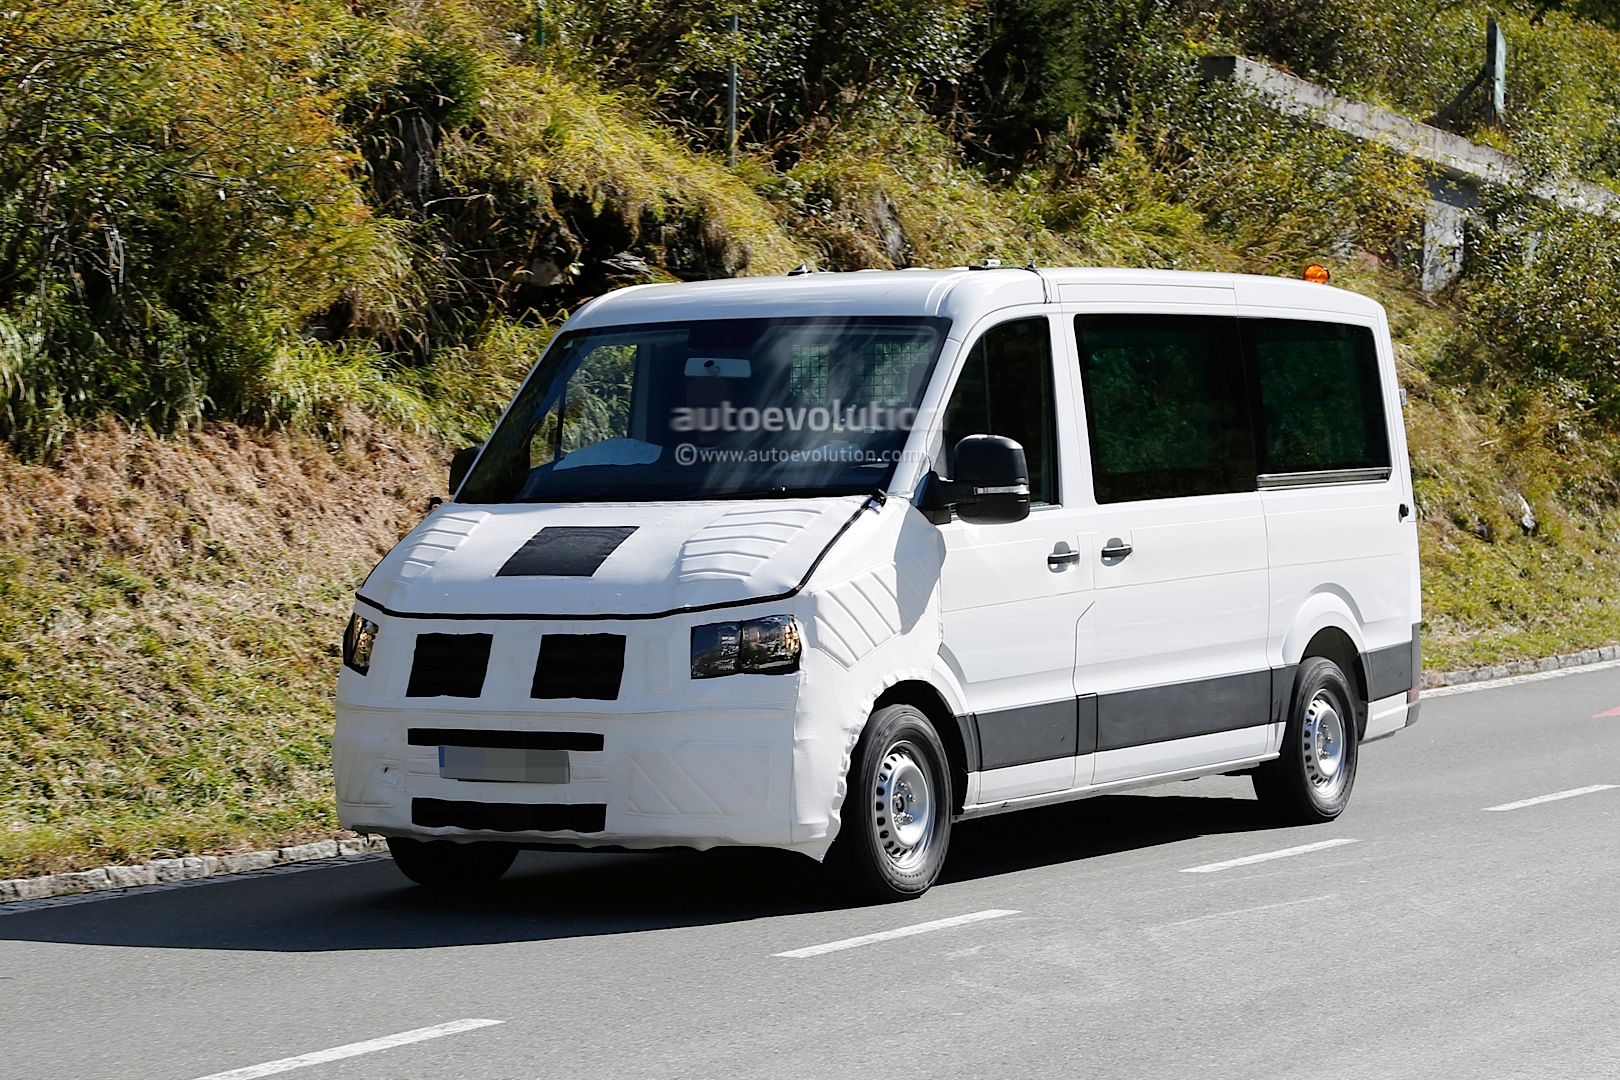 spyshots: 2016 / 2017 volkswagen crafter takes after the t6